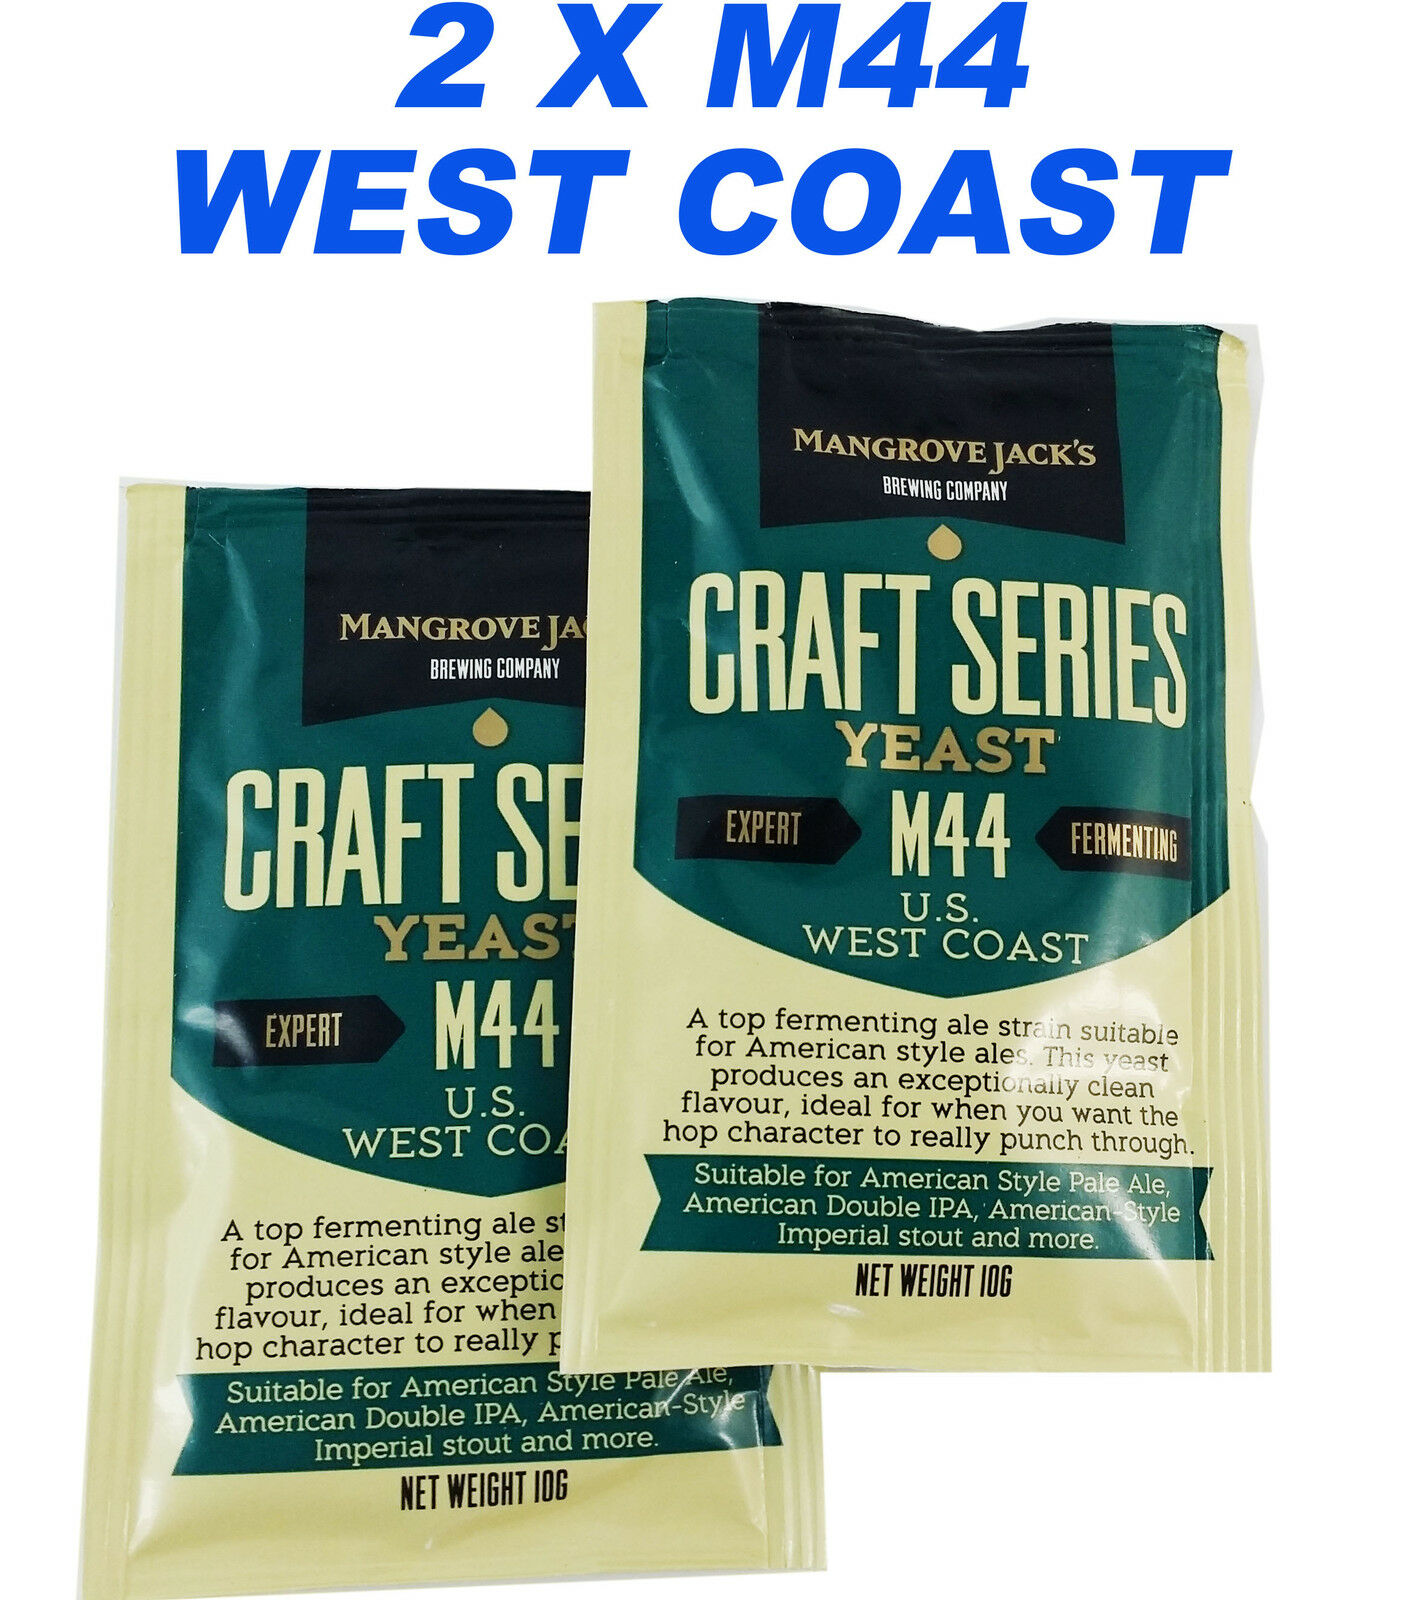 2 x Mangrave Jack's M44 WEST COAST Yeast American Style Pale Ale Yeast